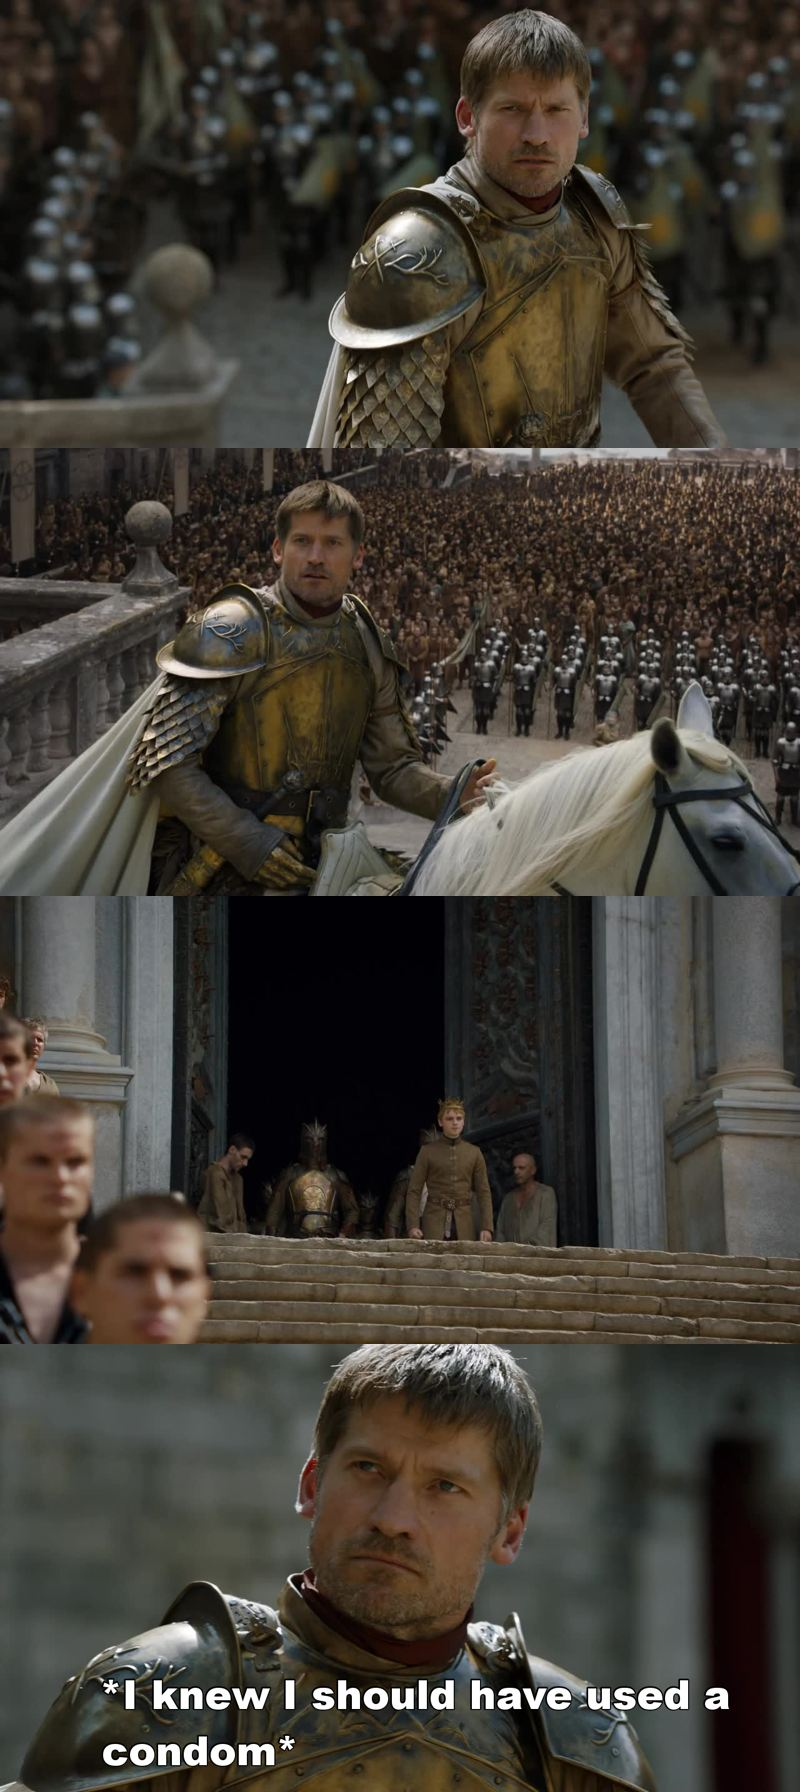 Really Tommen? You fuckin' DUMBASS!